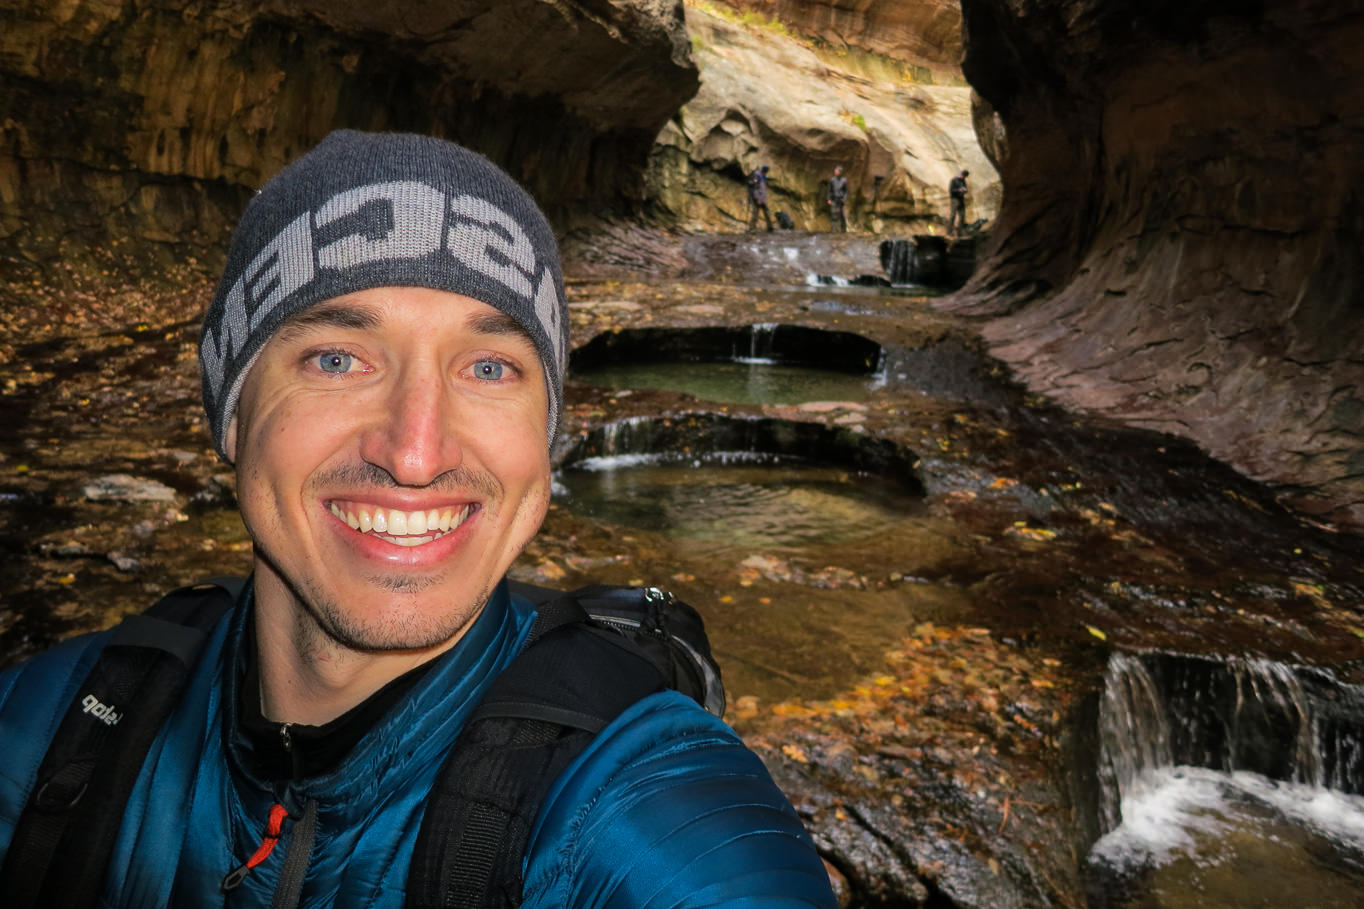 Colby Brown is a photographer, photo educator and author